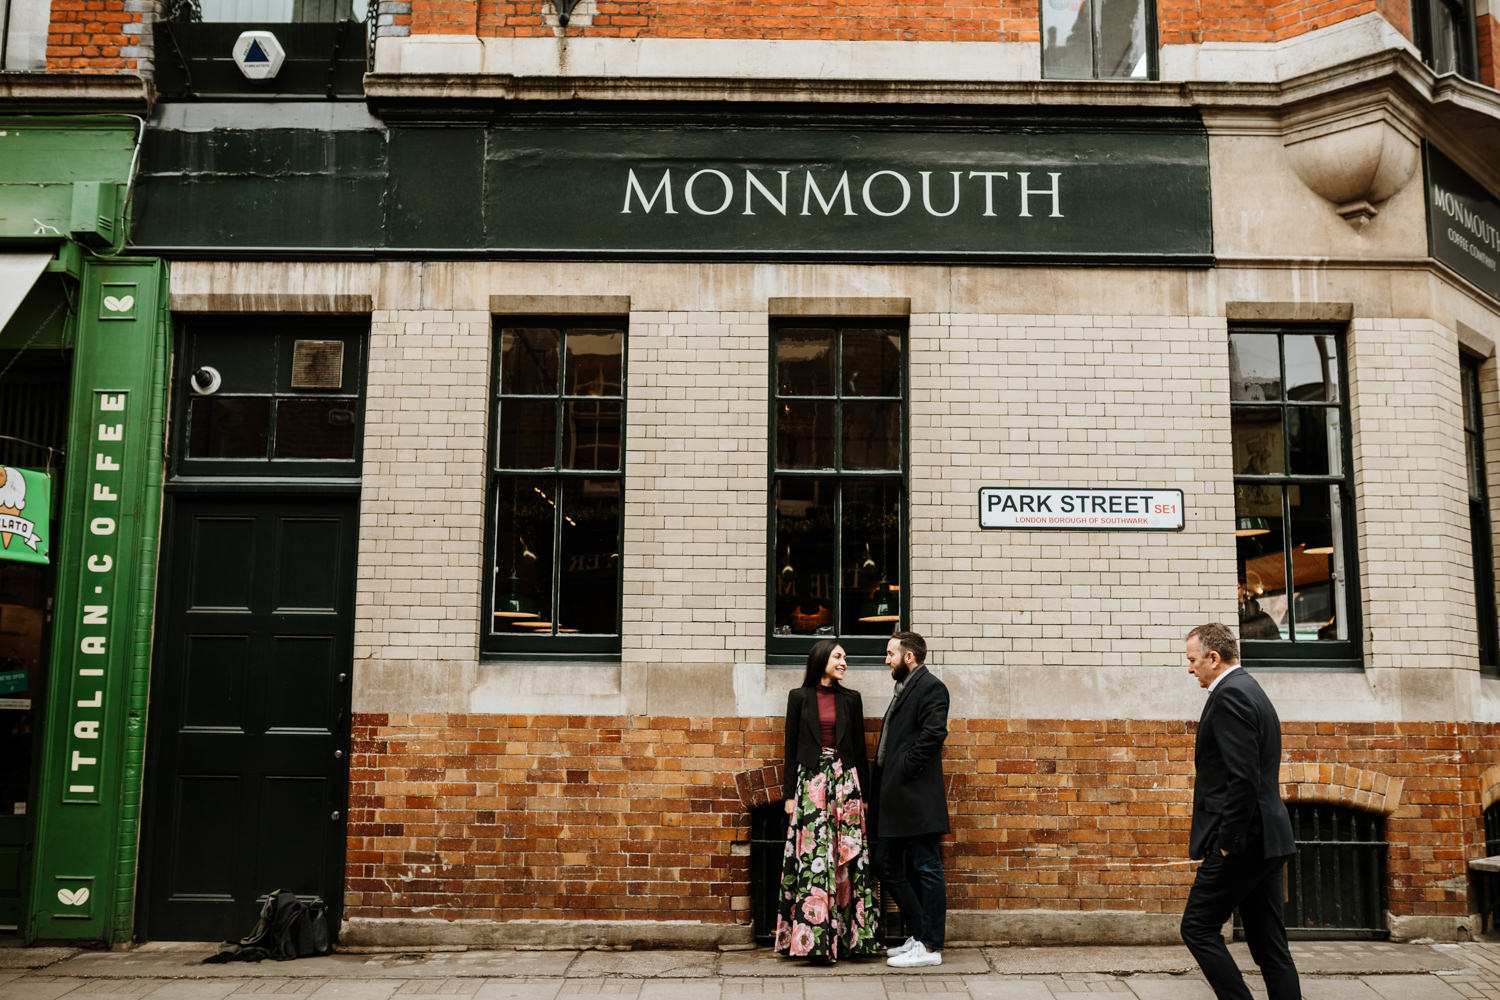 couple in London near Monmouth cafe during the Winter